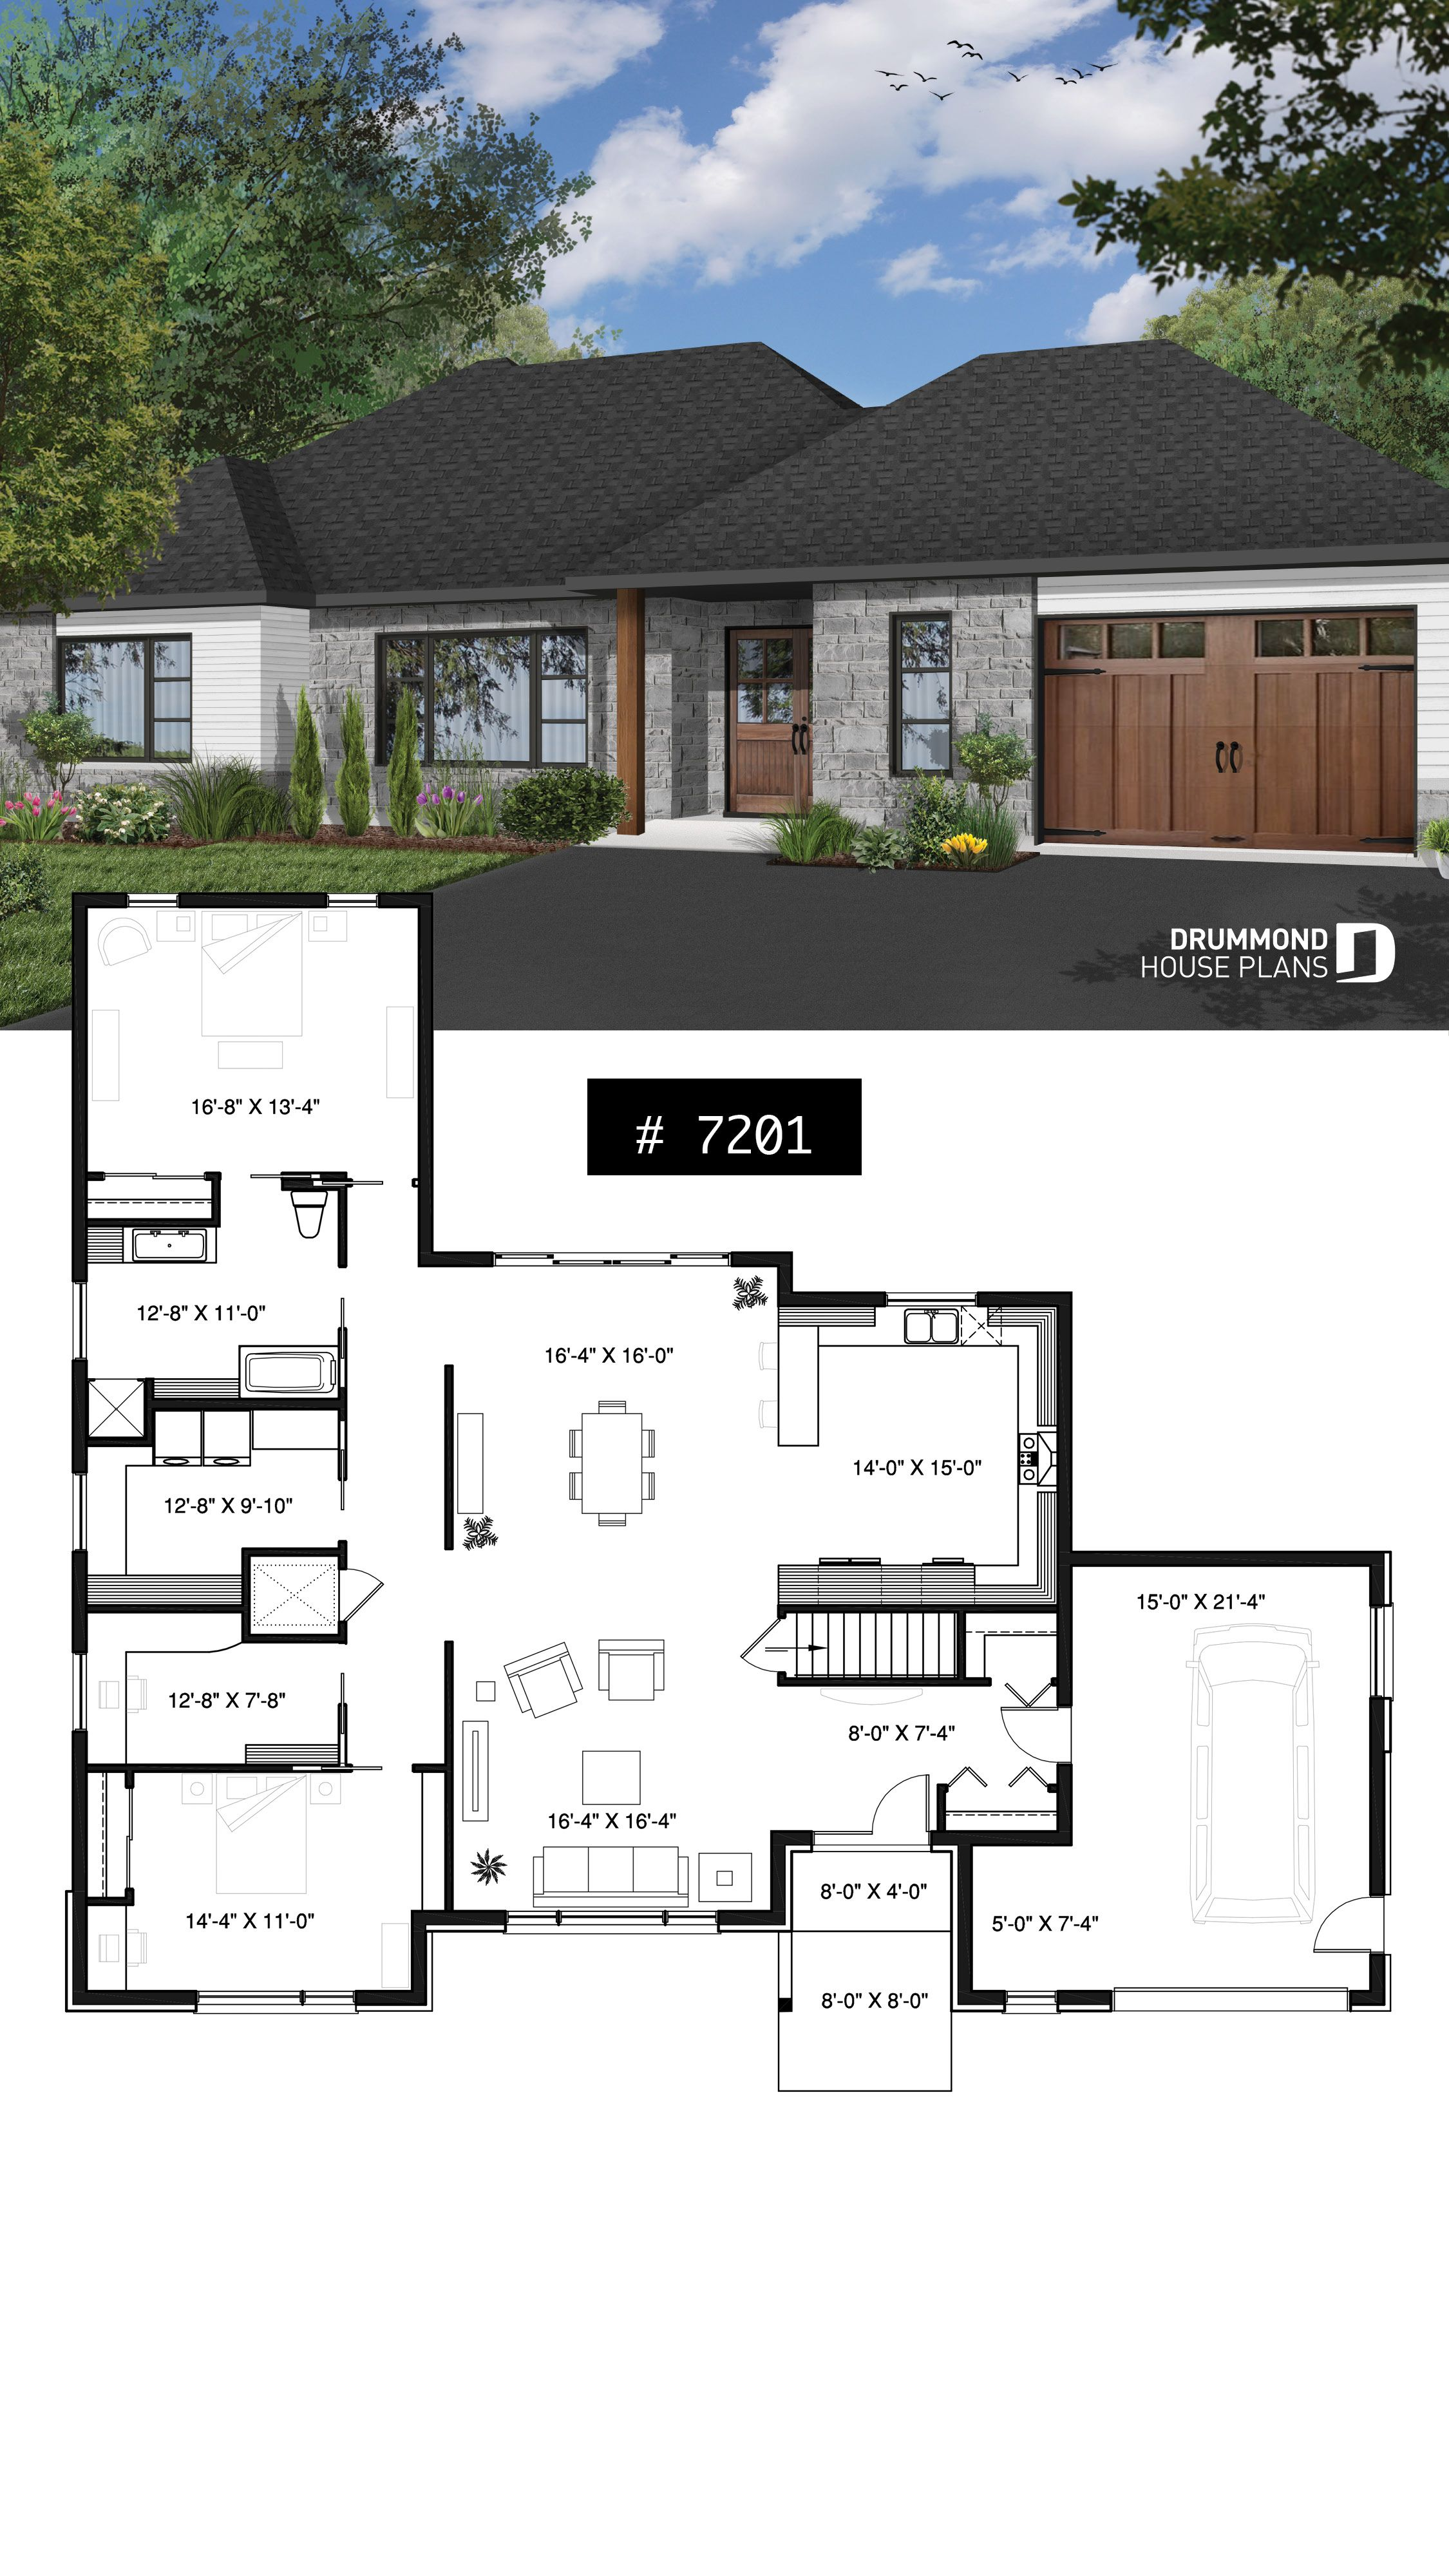 Modern ranch house plan with elevator, wheel chair ... on house plans with stairs, coastal house plans with elevator, craftsman house plans with elevator, contemporary floor plan with elevator, luxury house plans with elevator, house floor plans 6 bedrooms, house plan with bowling az, house plans with breakfast nook, house floor plan layouts, large home plans with elevator, duplex plans with elevator, house plans wheelchair elevator, floor plans luxury home elevator, elisha otis elevator, country house plans with elevator, house plans ranch style home,